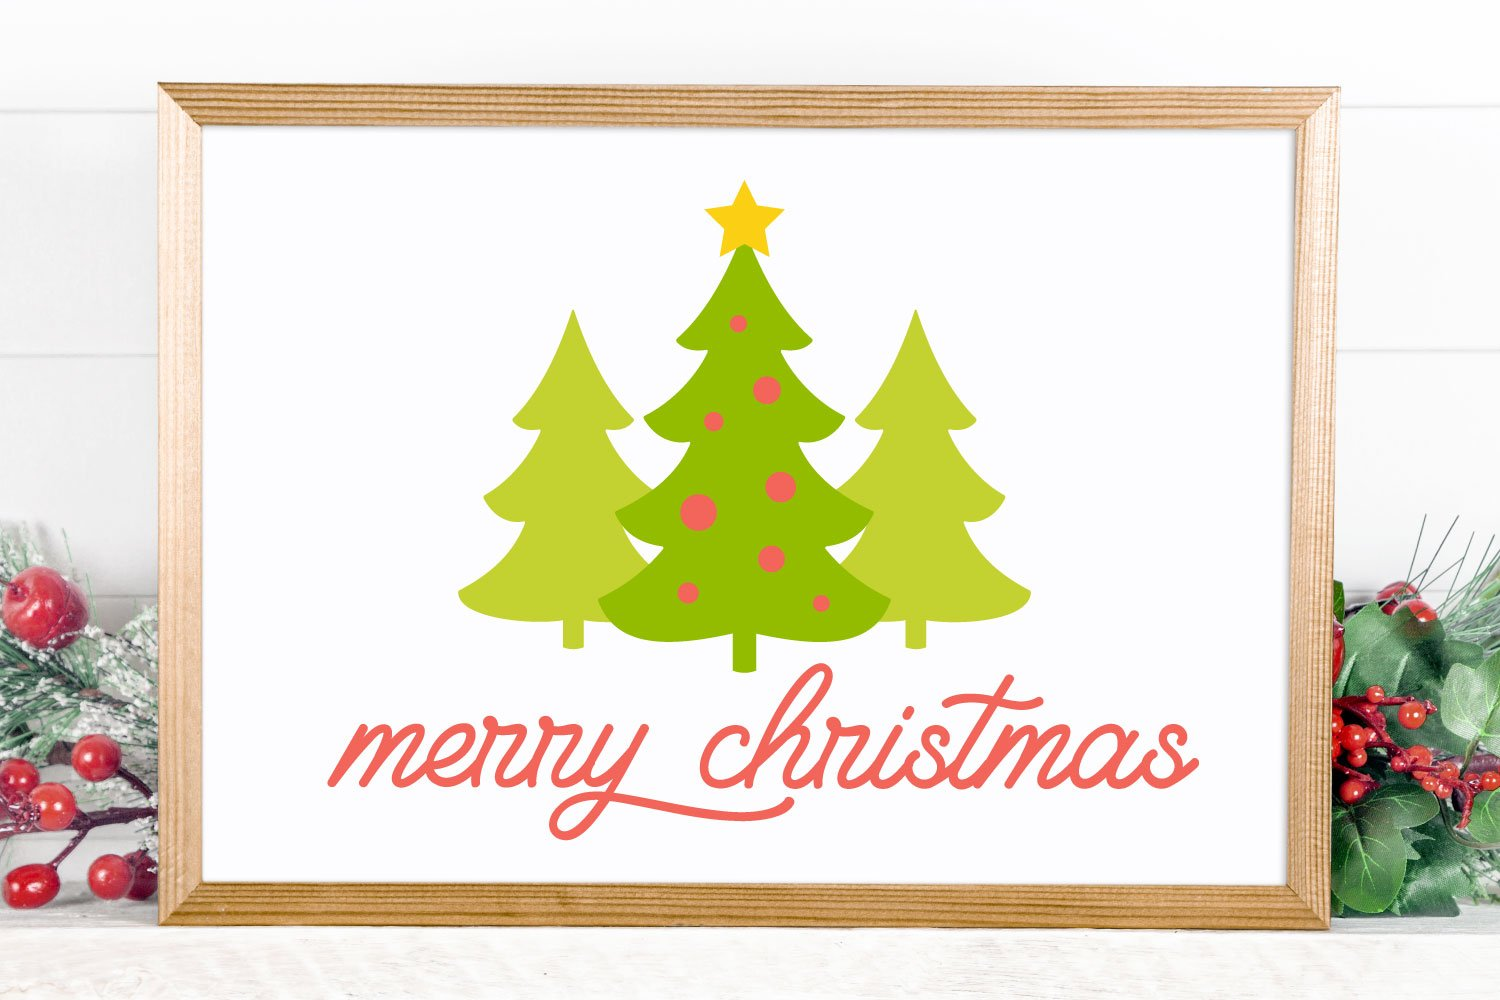 merry christmas trees SVG mockup in frame